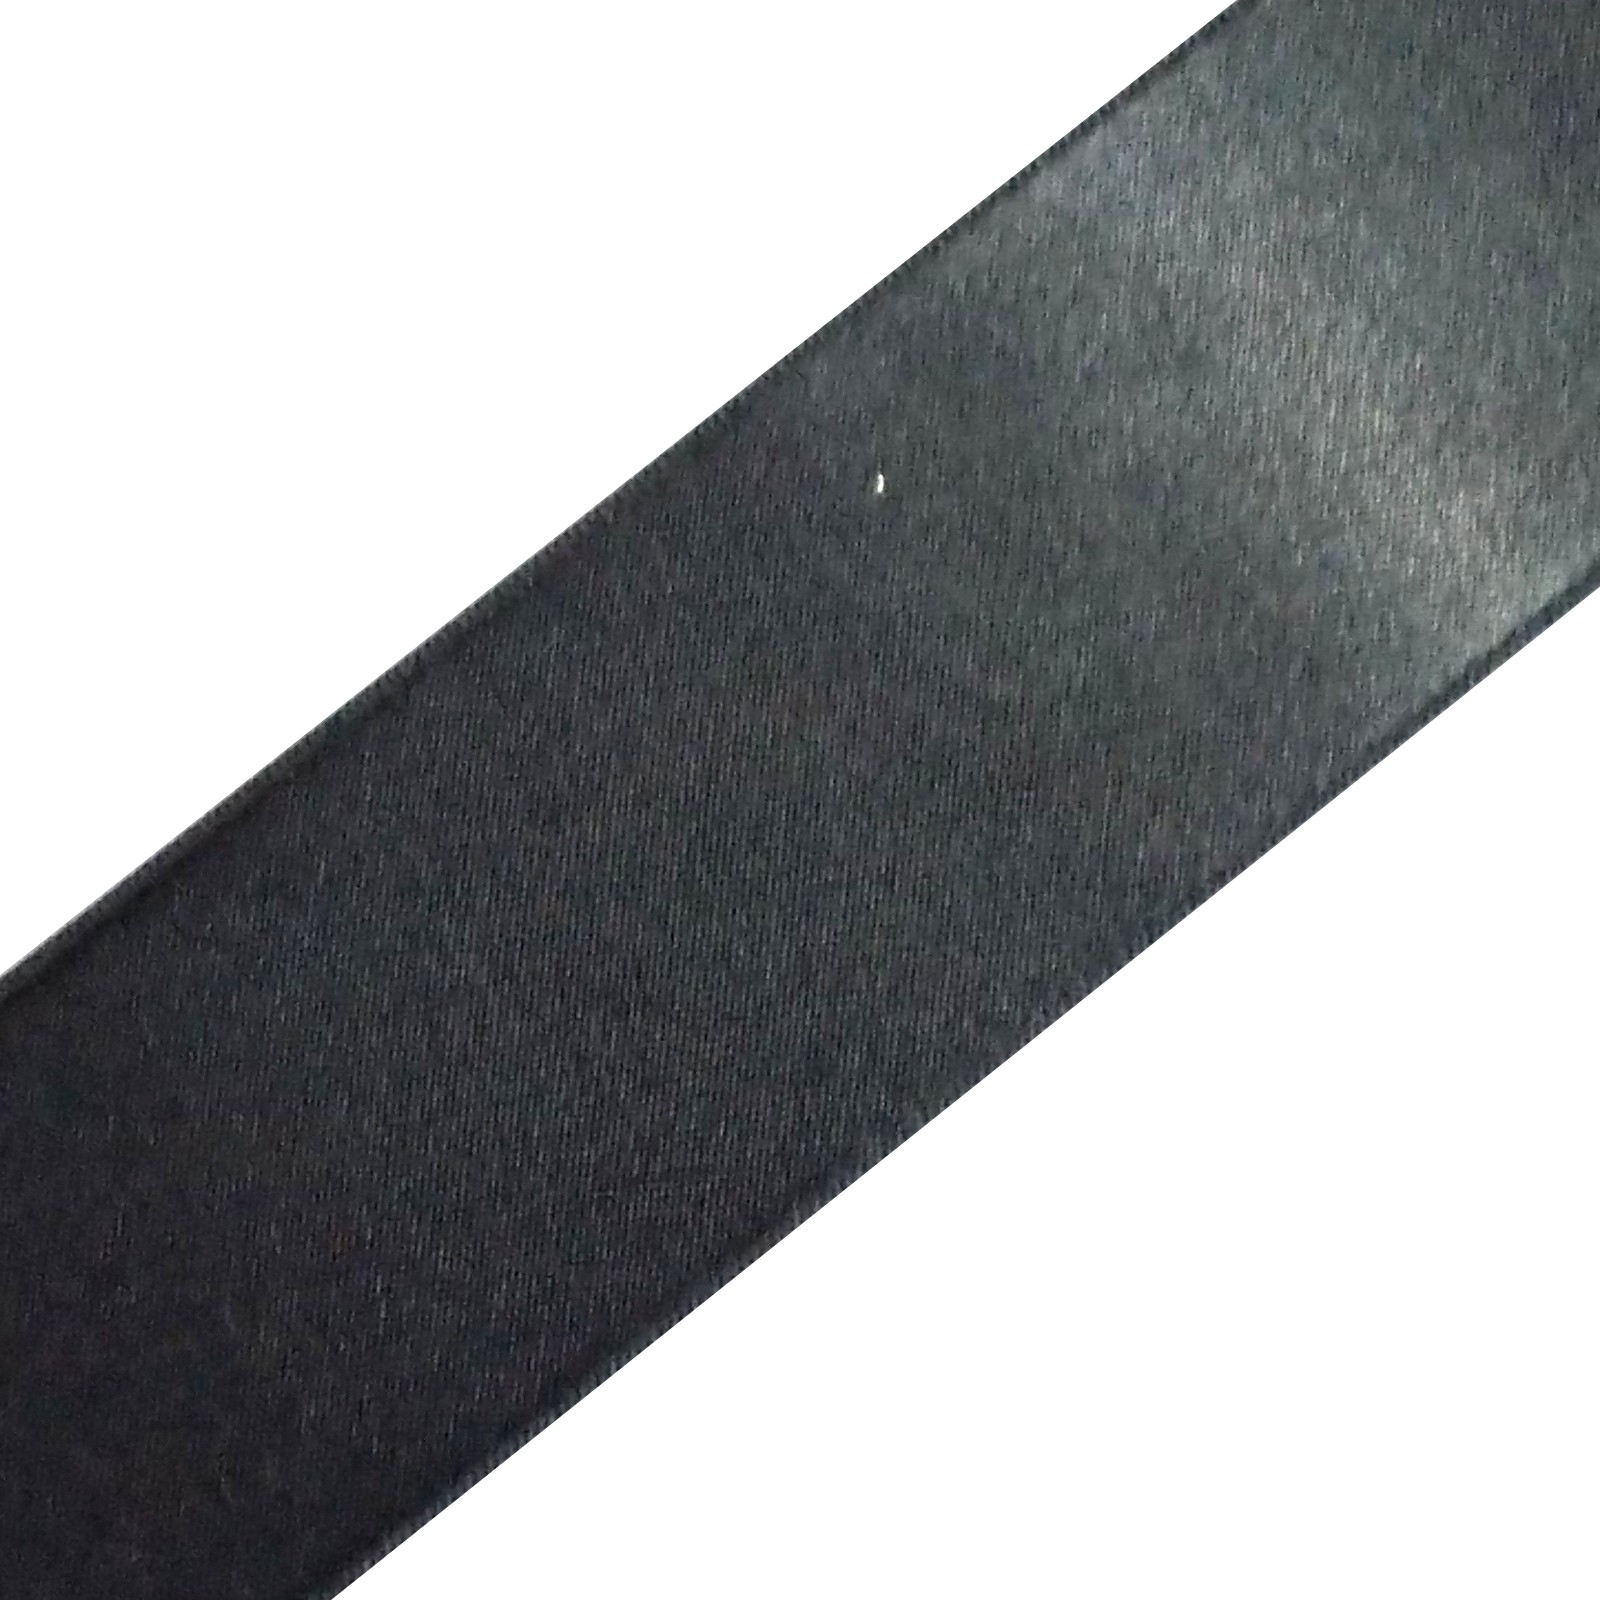 Double Satin Ribbon 6mm wide Charcoal 3 metre length